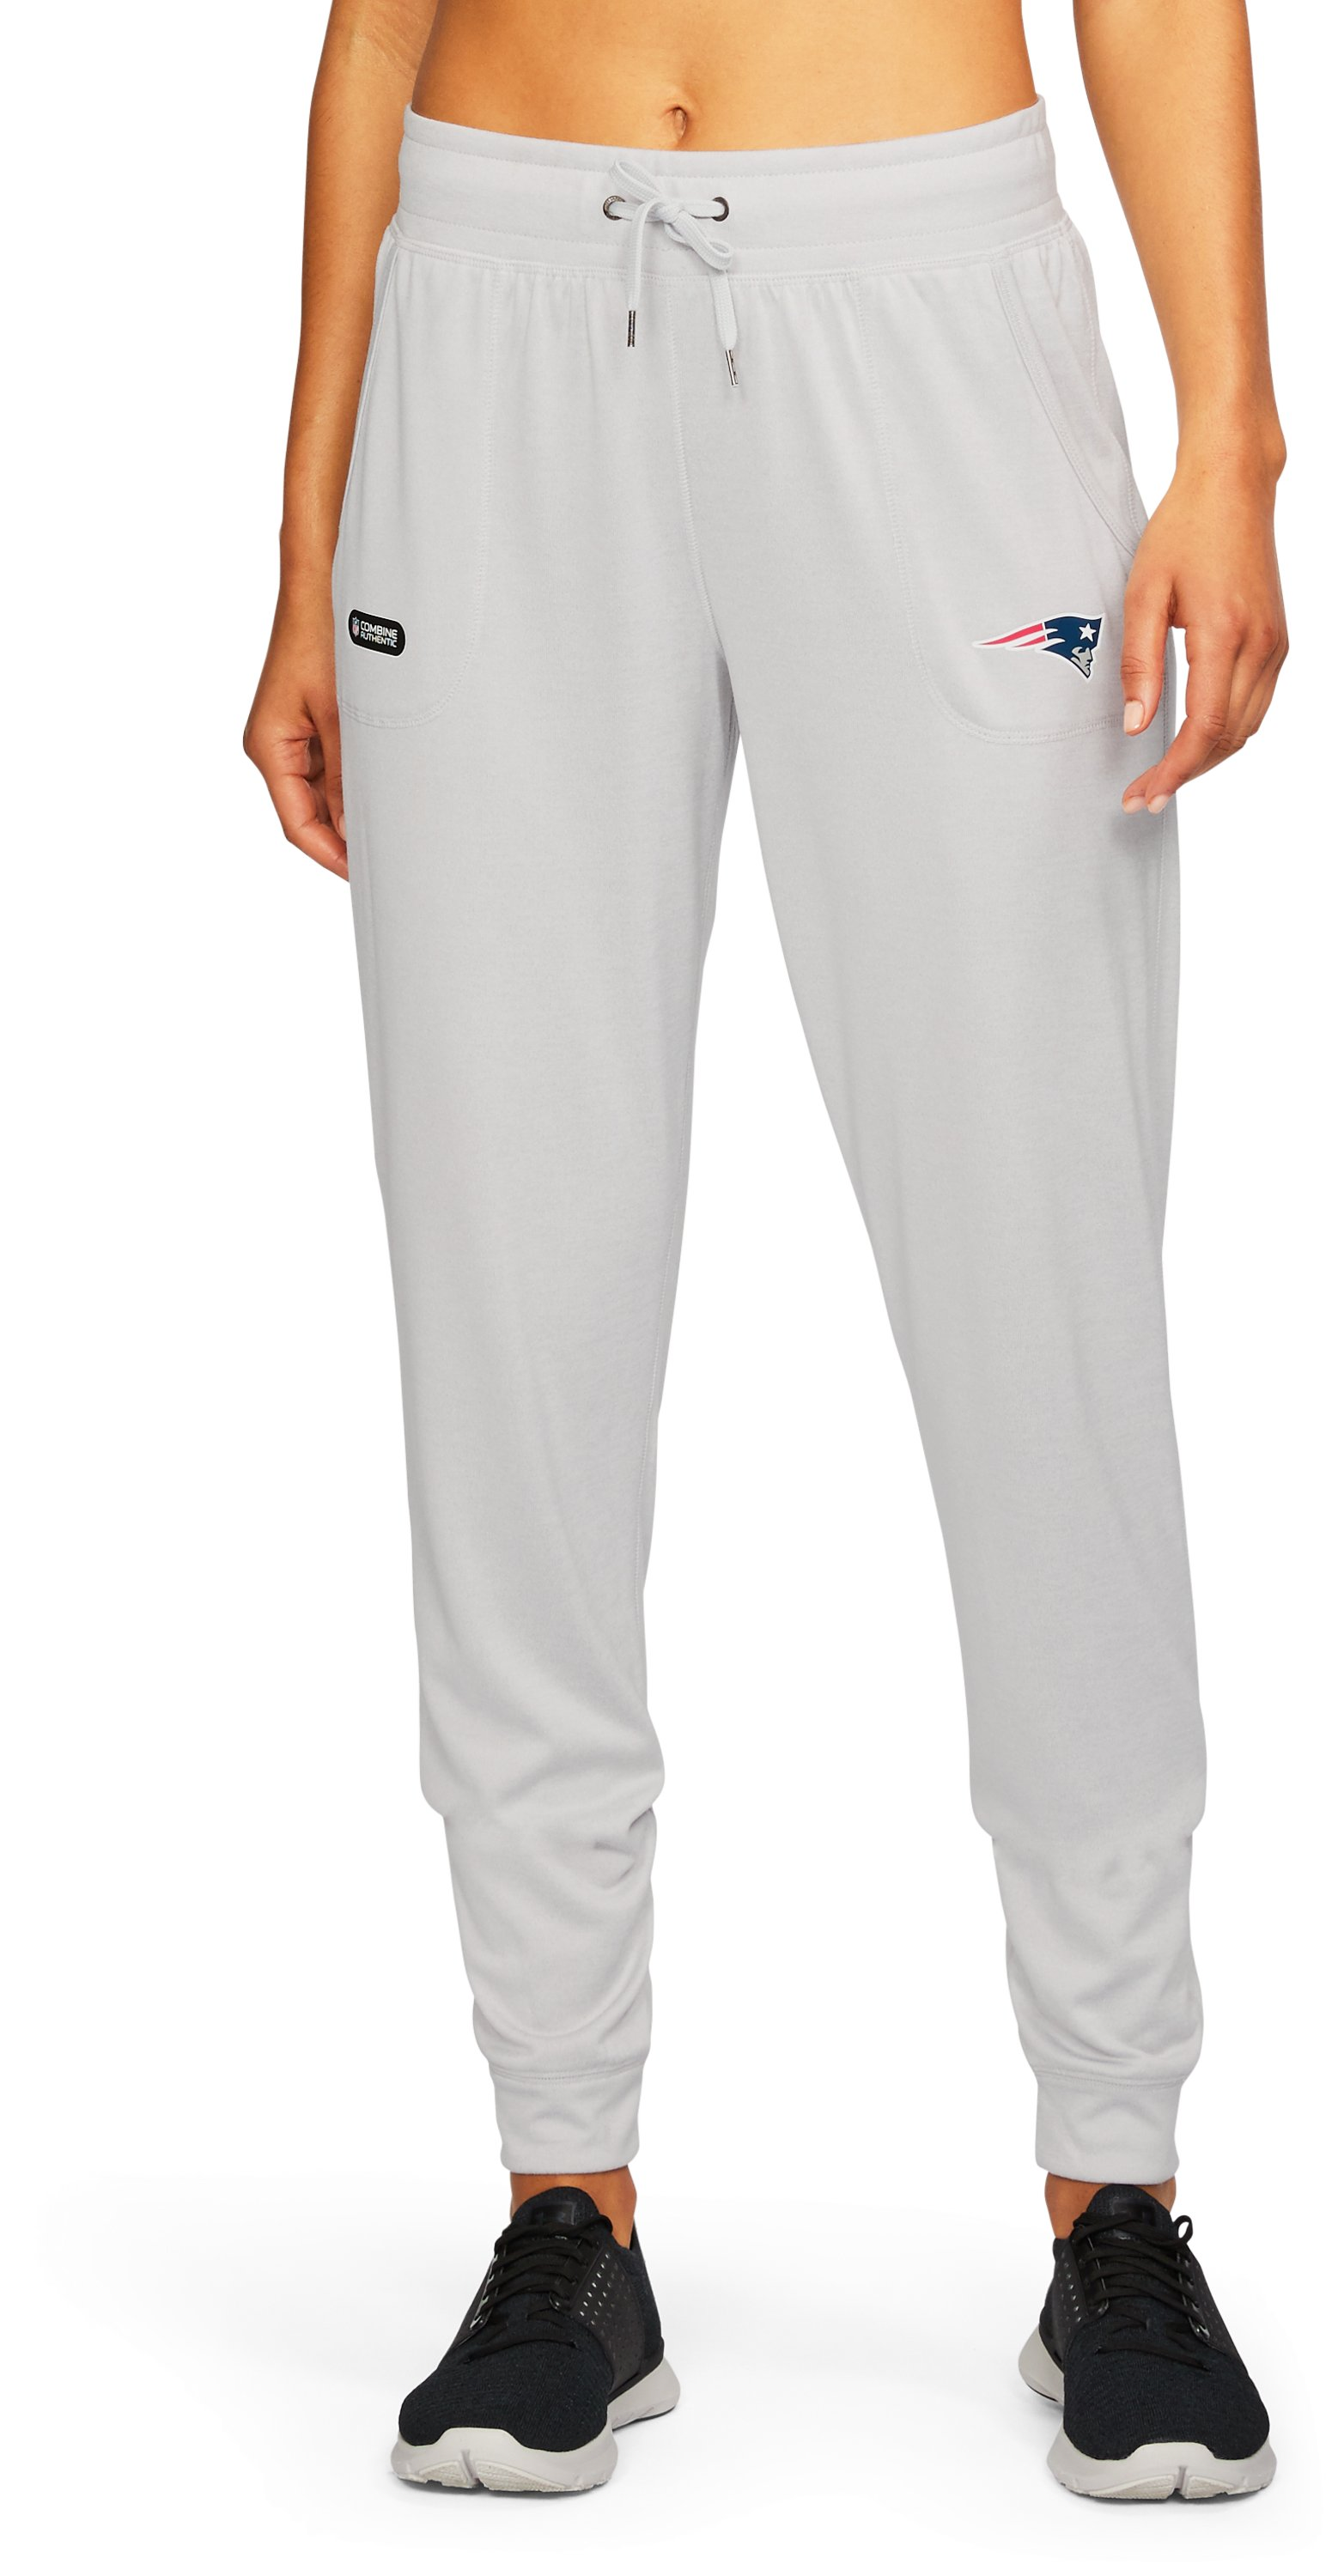 Women's NFL Combine Authentic UA Tech™ Pants, NFL_NEW ENGLAND PATRIOTS_GLACIER GRAY